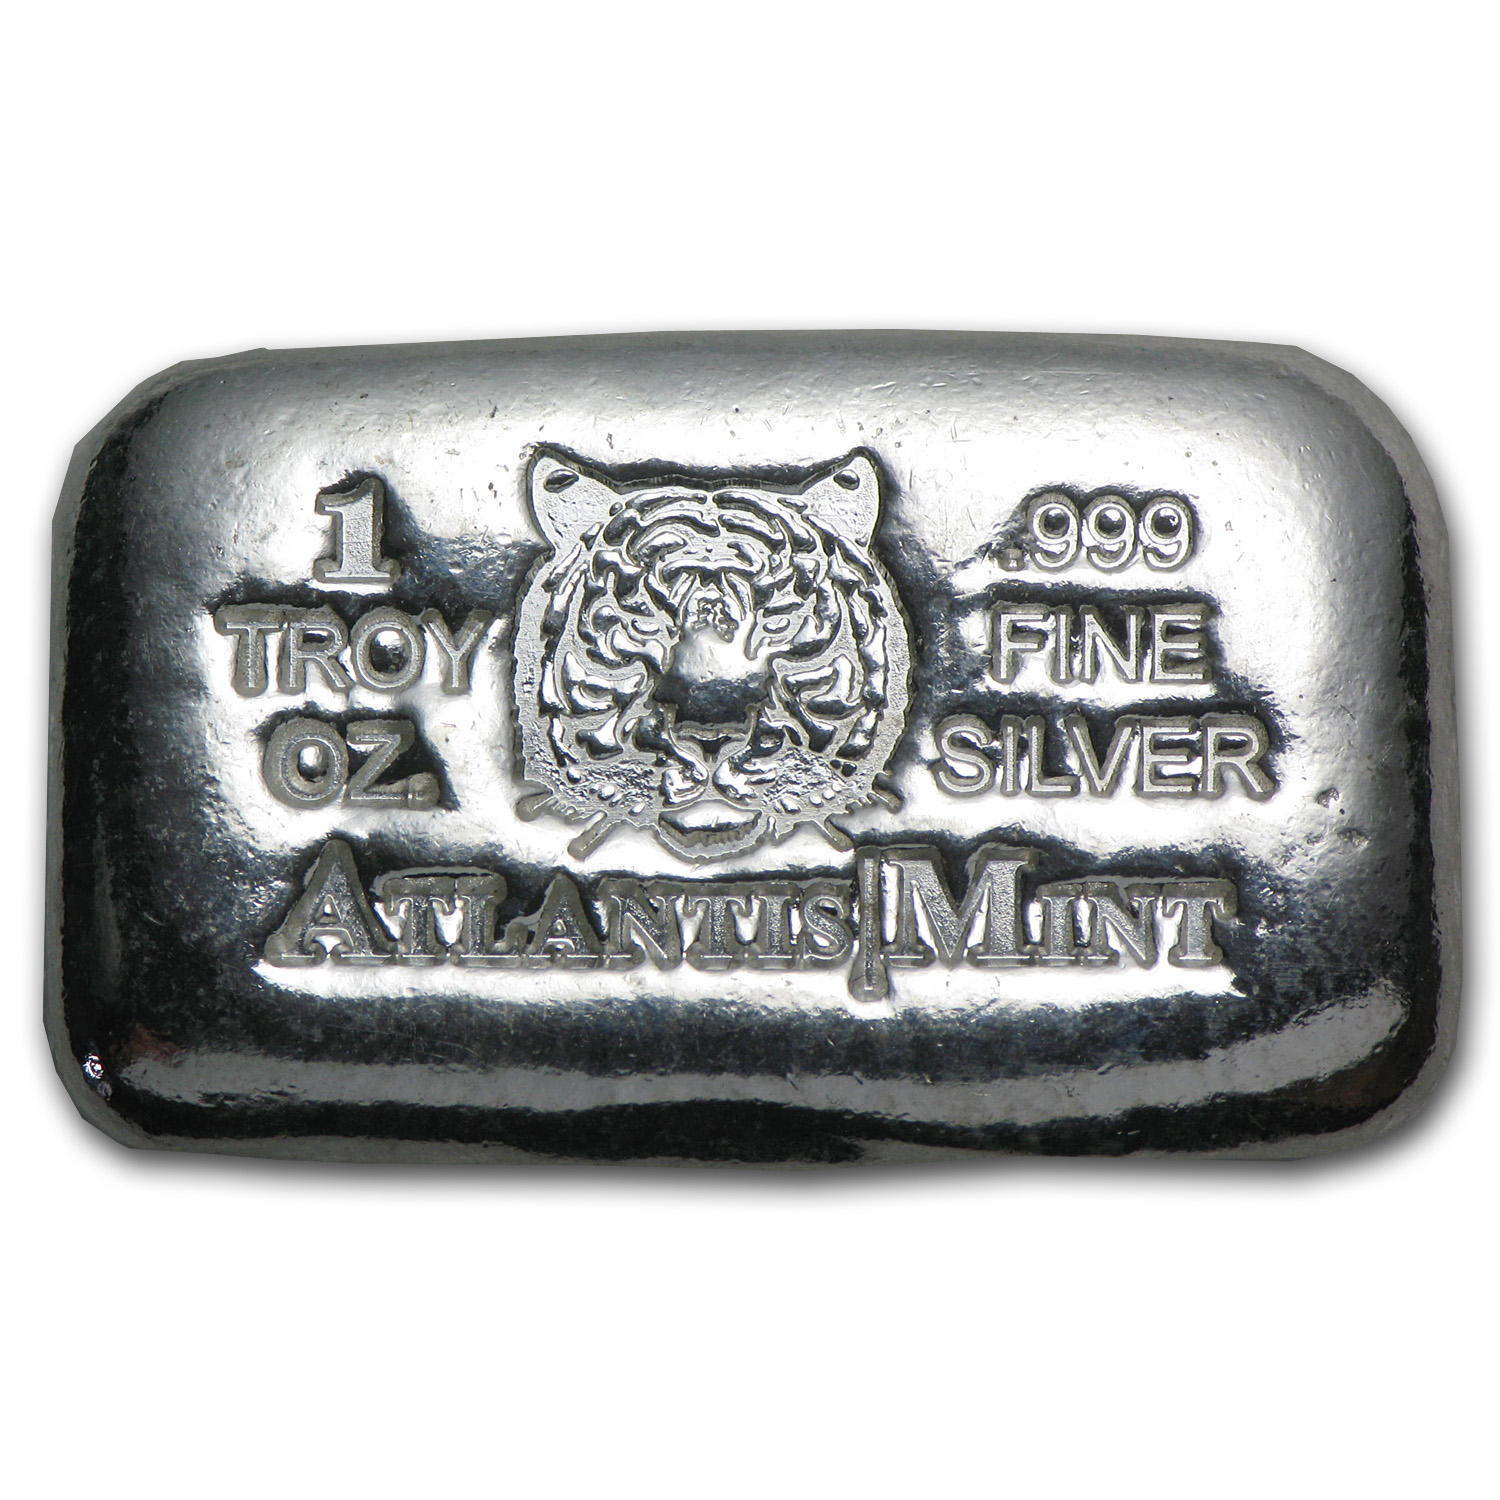 1 oz Silver Bars - Atlantis Mint Tiger